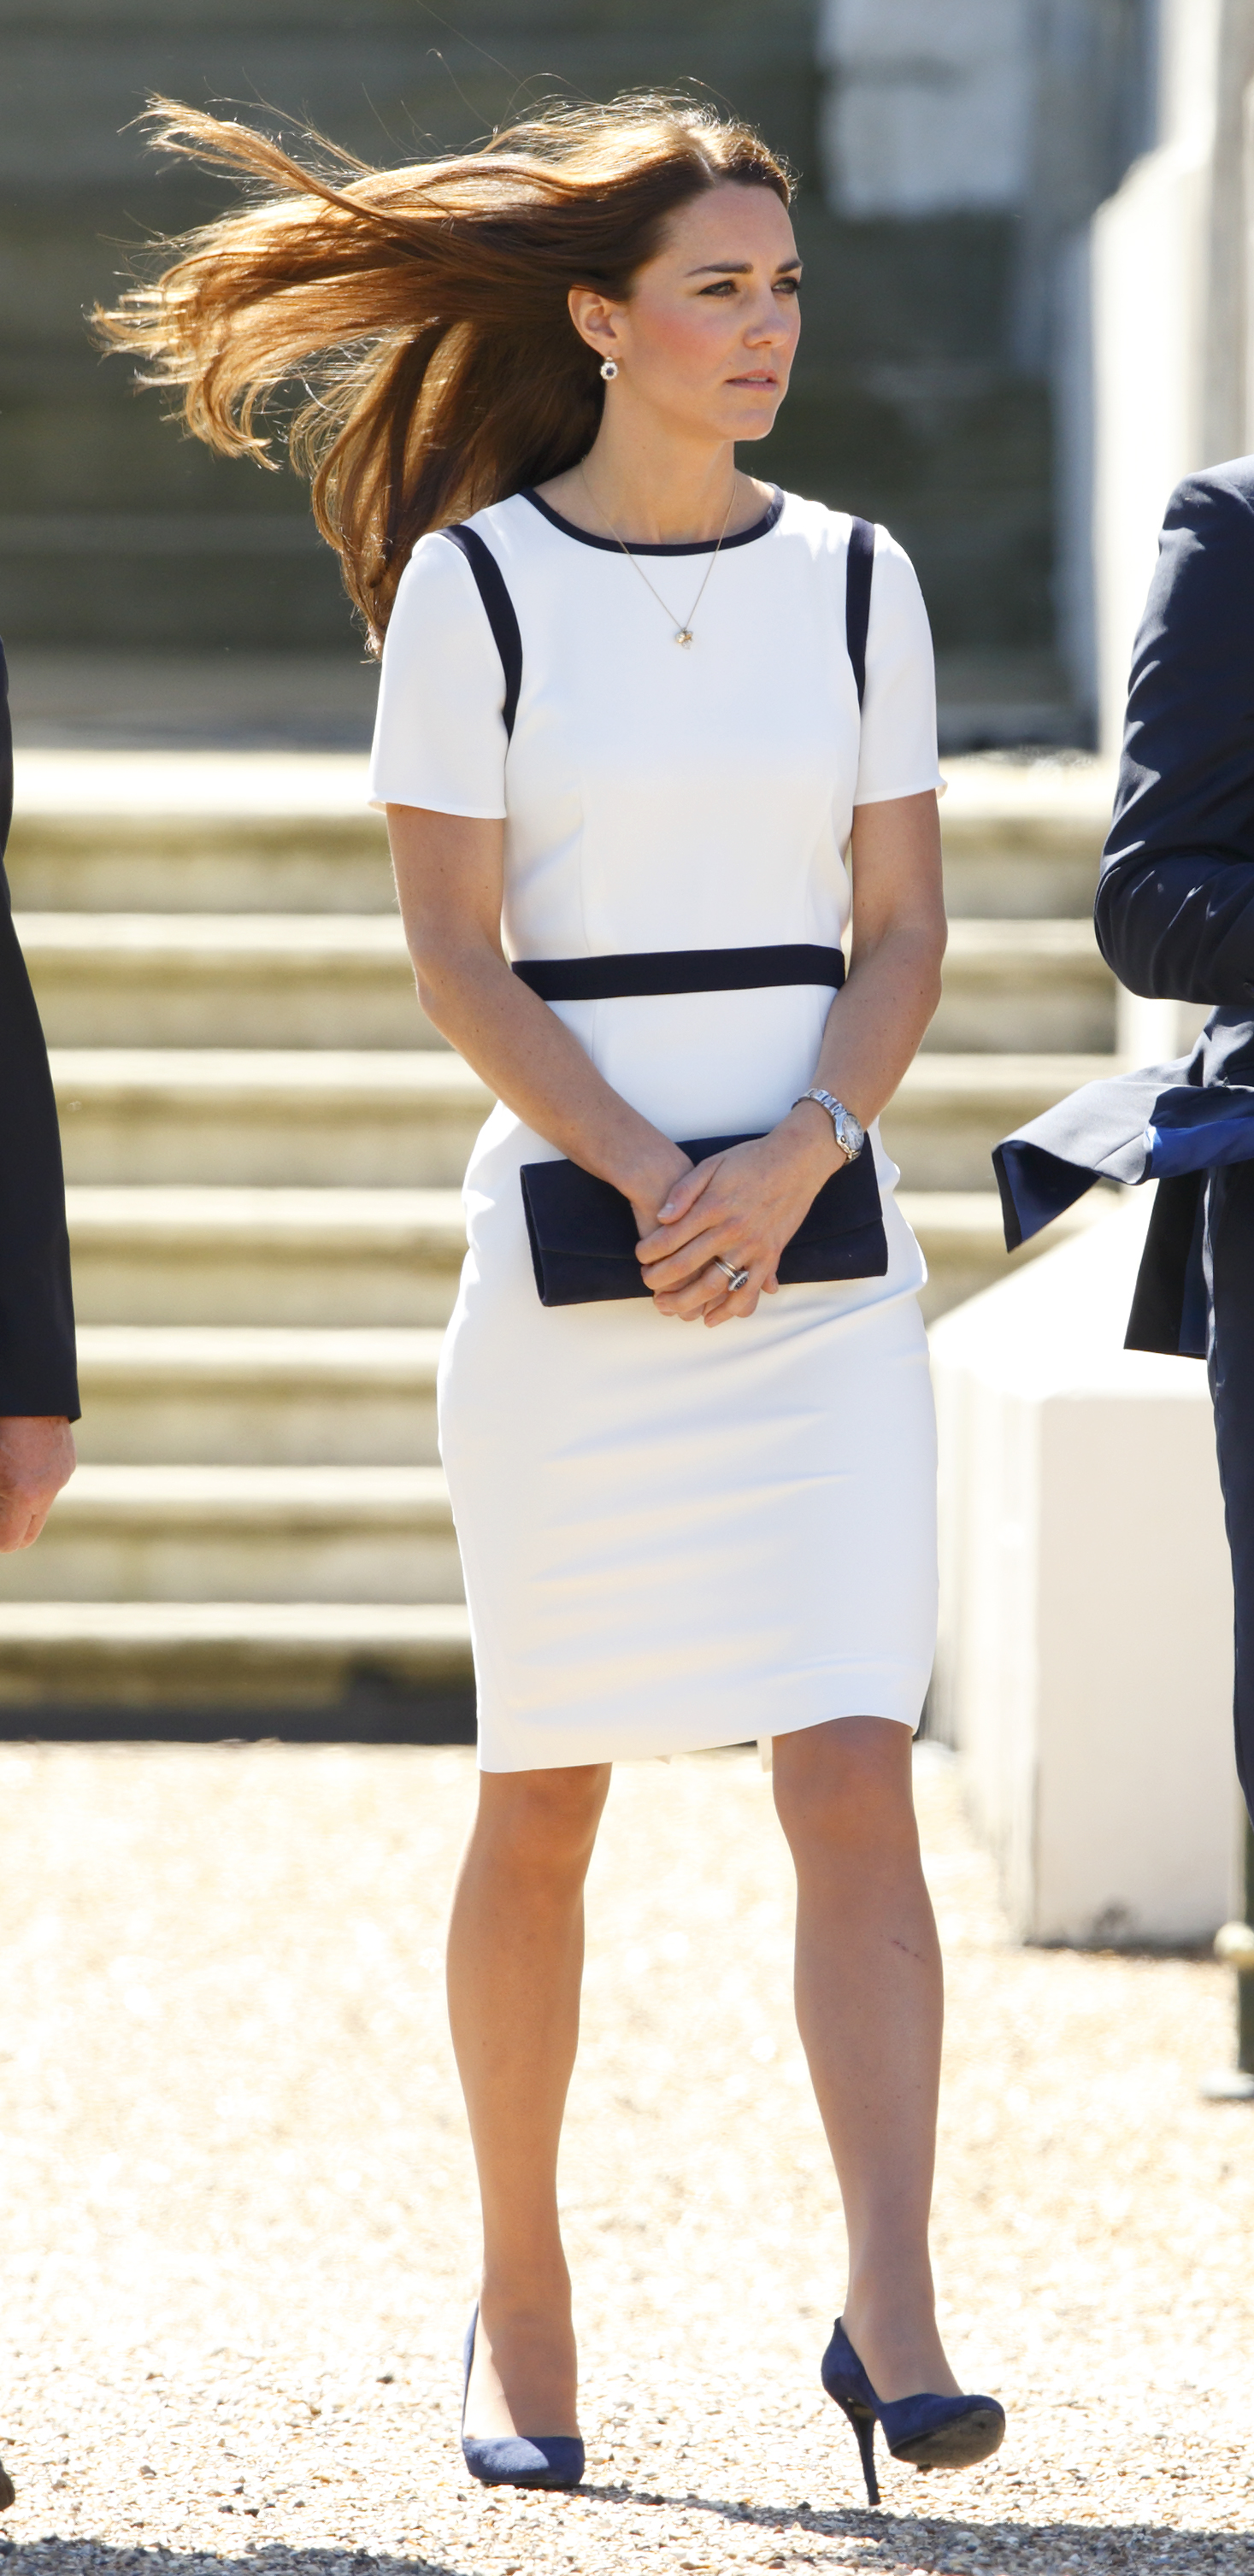 <strong>Nautical Style</strong>Catherine, Duchess of Cambridge attends the Ben Ainslie Racing America's Cup Launch Event at the National Maritime Museum in Greenwich on June 10, 2014 in London.